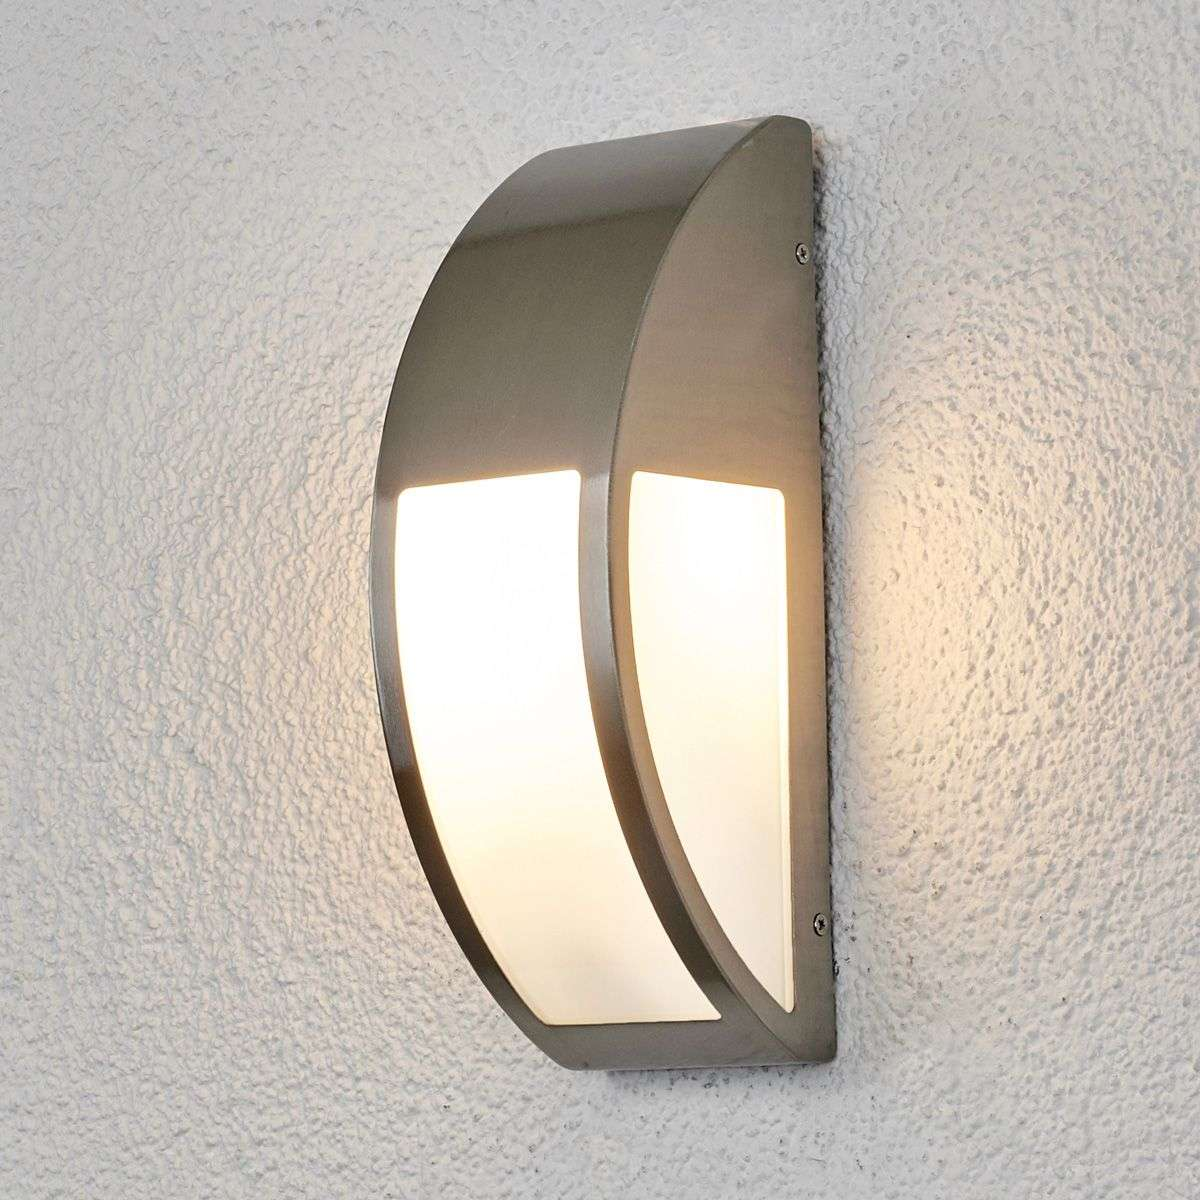 Marianna perfectly shaped led outdoor wall light lights marianna perfectly shaped led outdoor wall light 9960047 31 mozeypictures Image collections